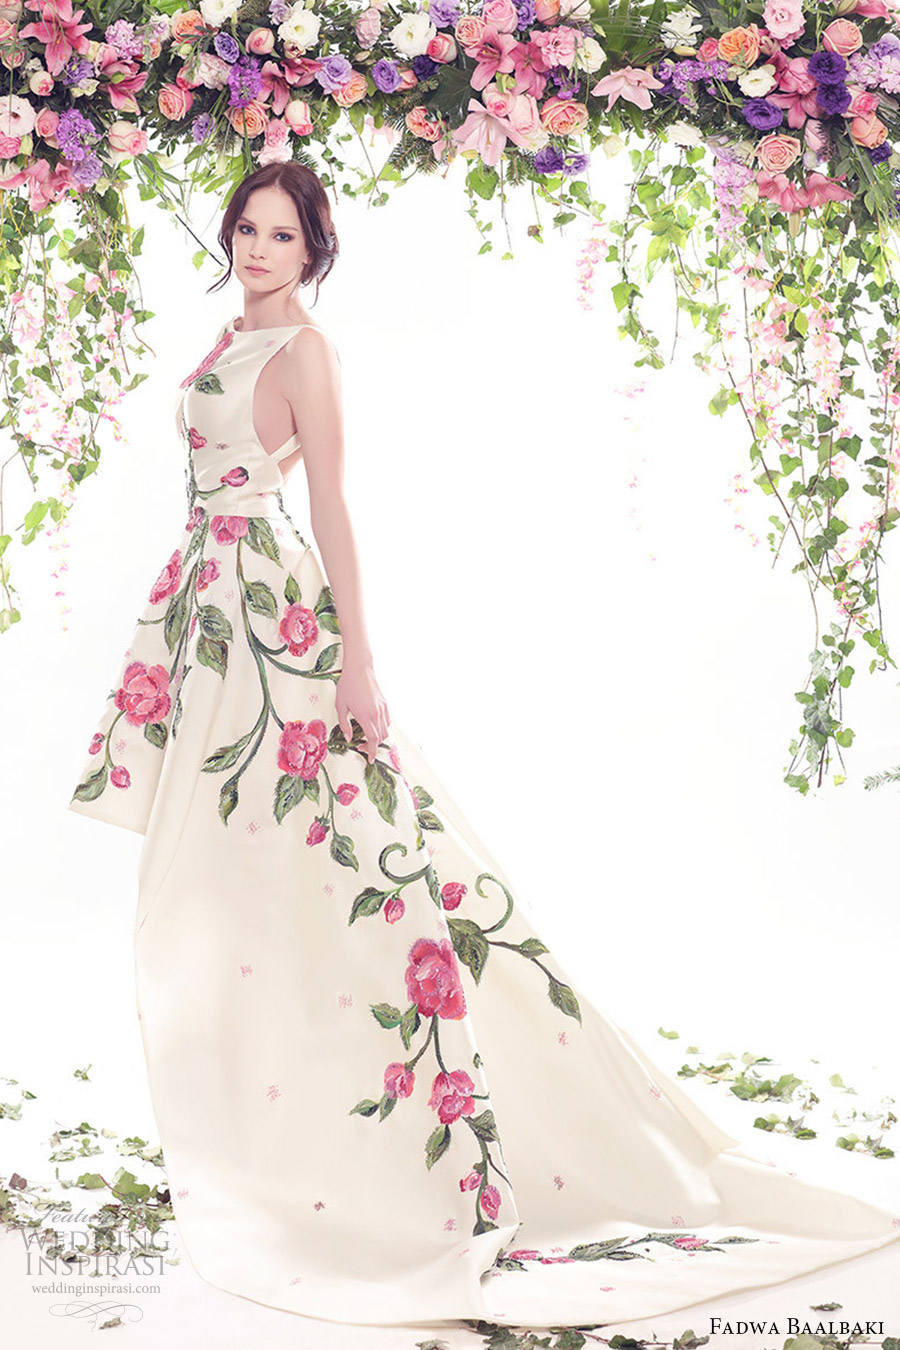 fadwa-baalbaki-spring-2016-couture-jewel-neck-ball-gown-multi-color-floral-print-mv